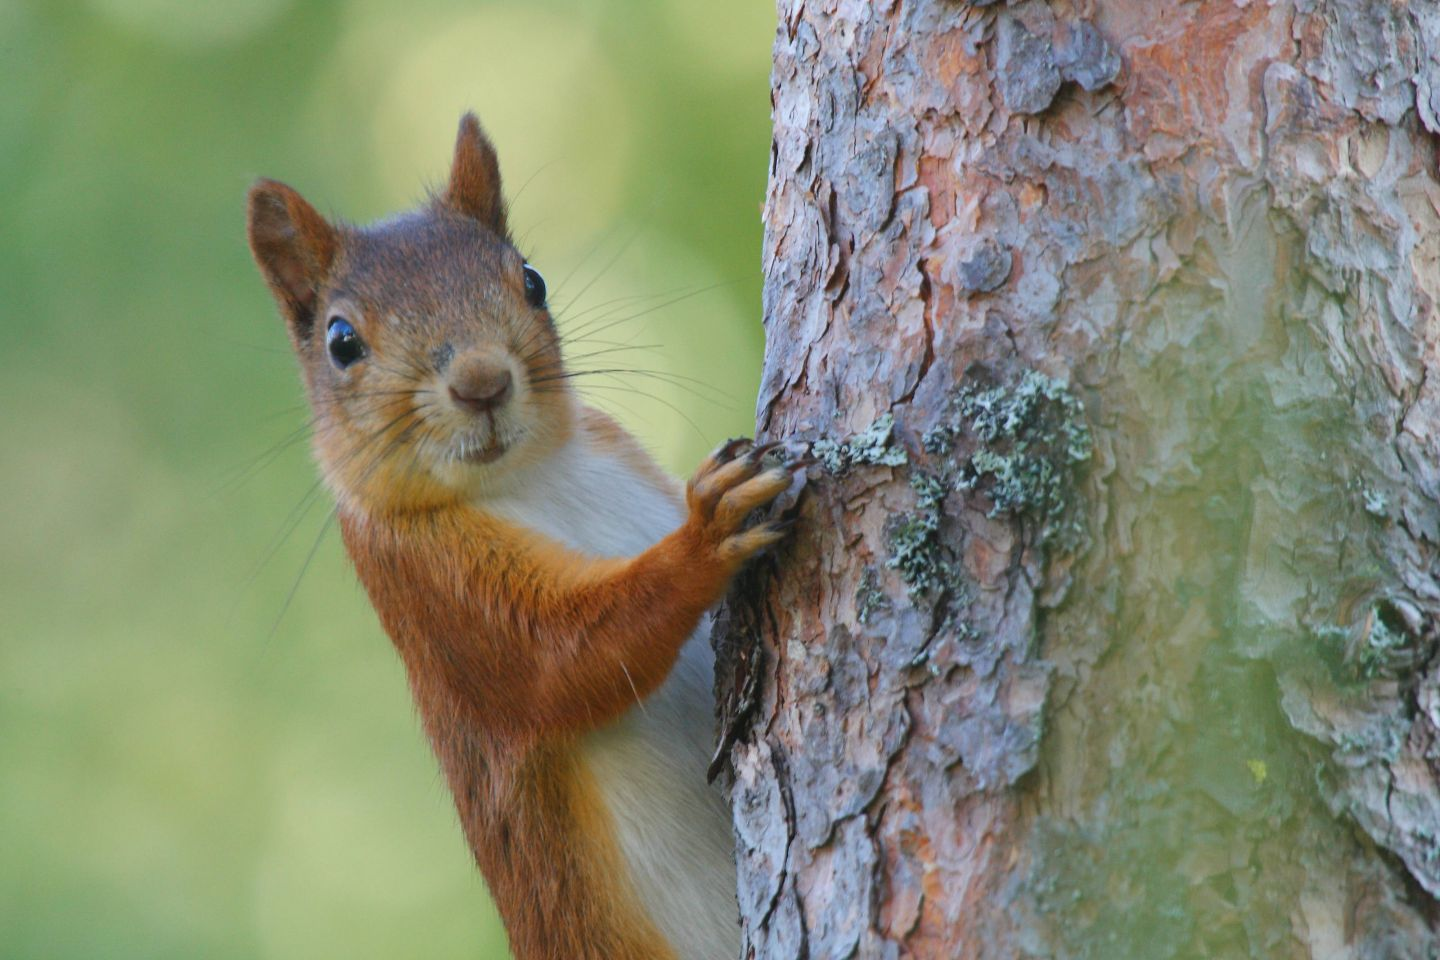 Squirrels, part of the Arctic wildlife you'll find in Finnish Lapland